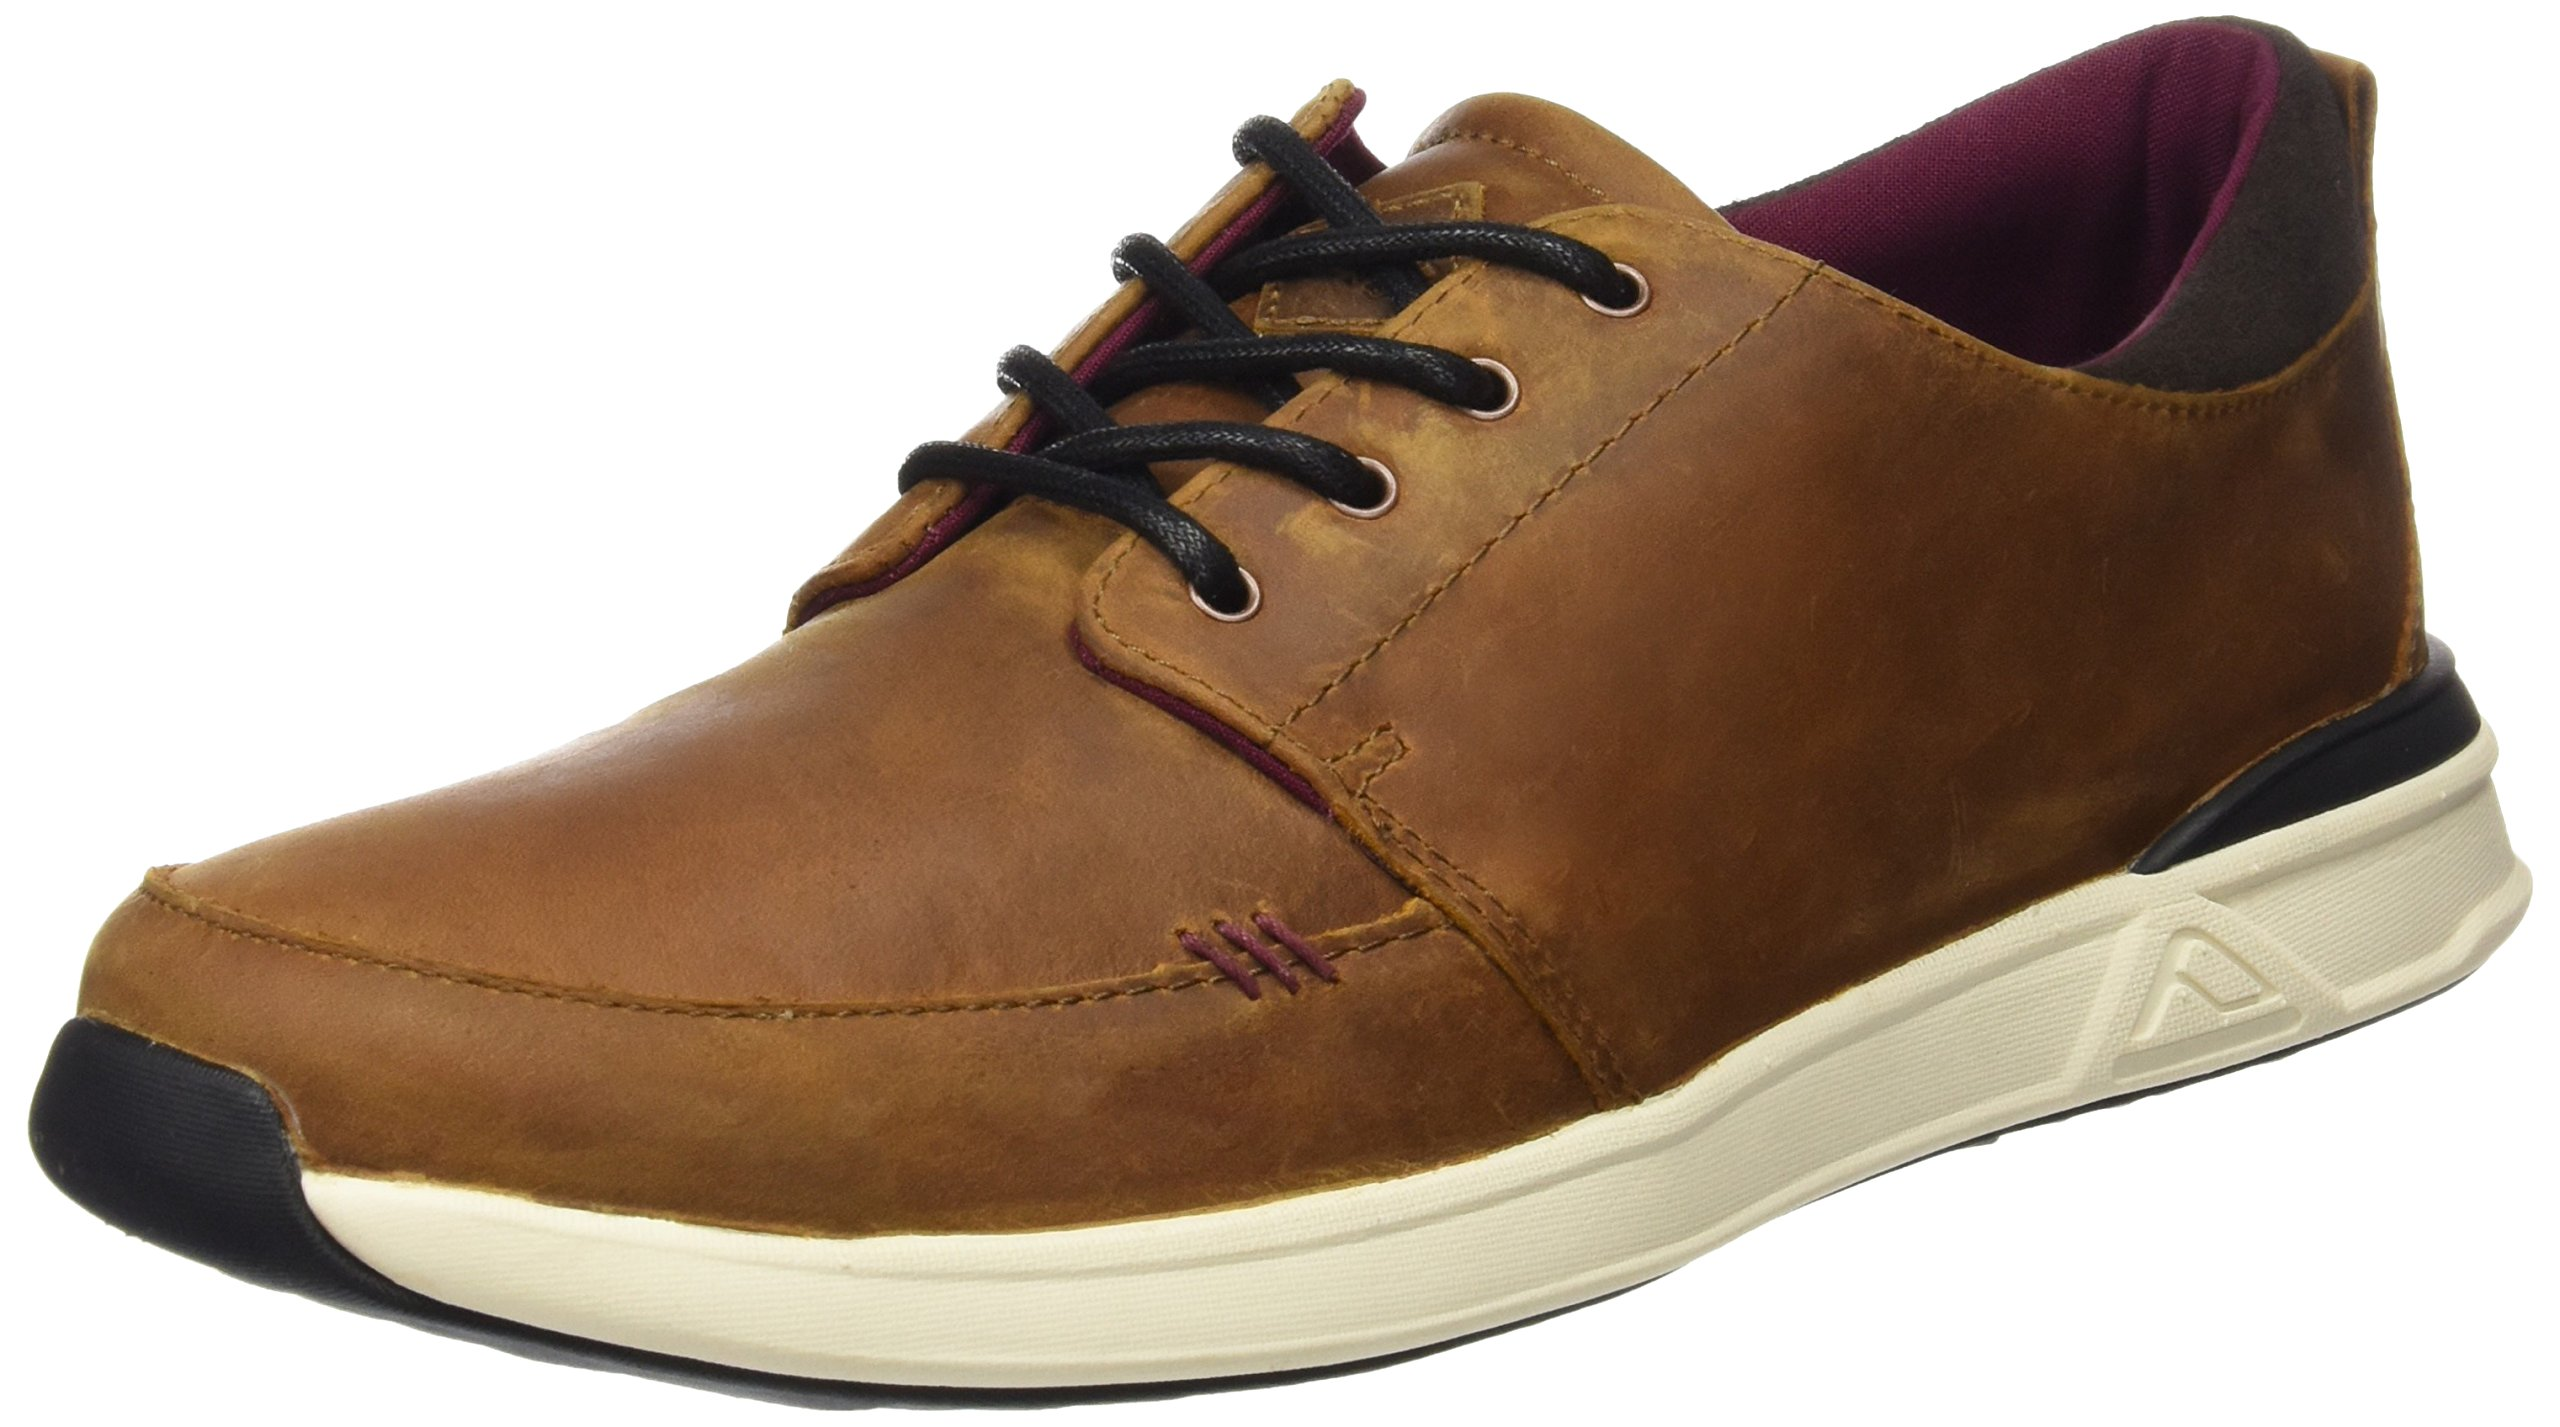 Reef Men's Rover Low FGL Fashion Sneaker, Brown, 11 M US